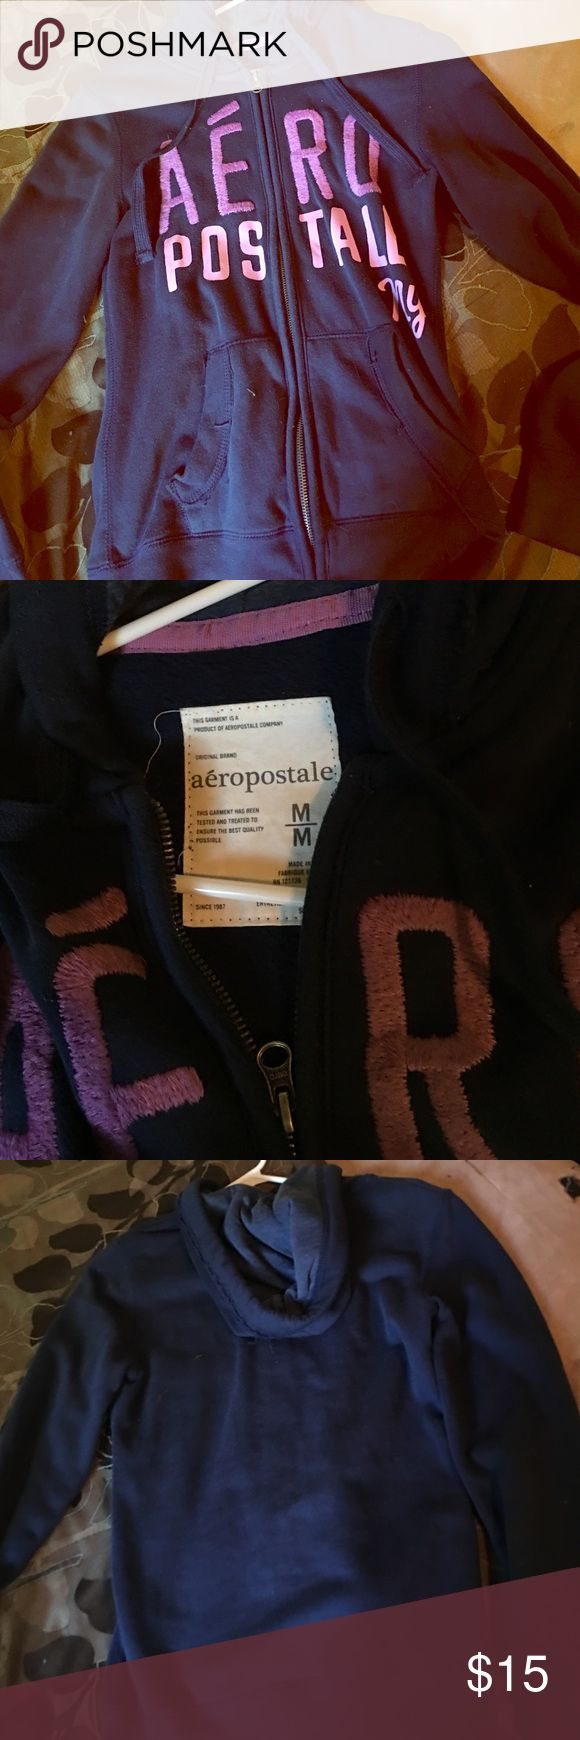 Aeropostale women's blue/purple hoodie Zip up women's navy blue hoodie! Front says aero postle ny on it! Zip up front, hood, and plain back, front pockets Aeropostale Jackets & Coats